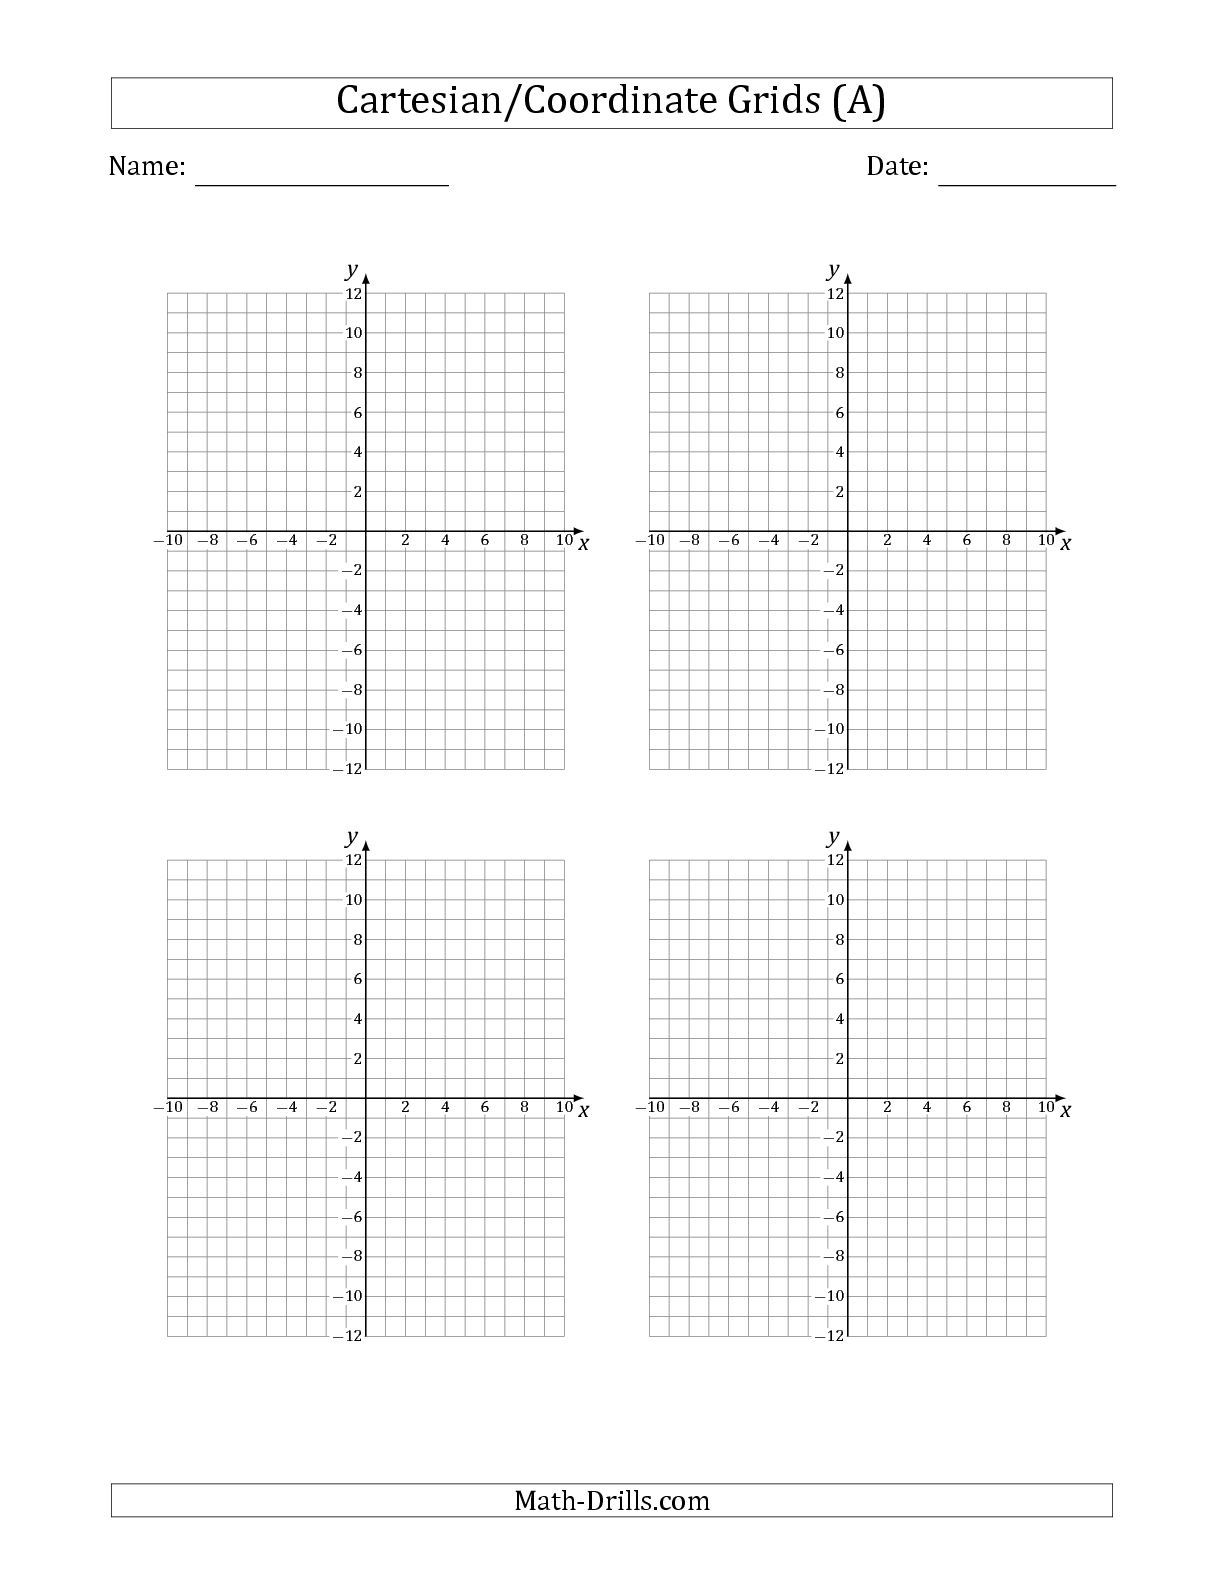 The 4 Per Page Cartesian/Coordinate Grids math worksheet from the Graph  Paper page at Mat…   Coordinate grid [ 1584 x 1224 Pixel ]